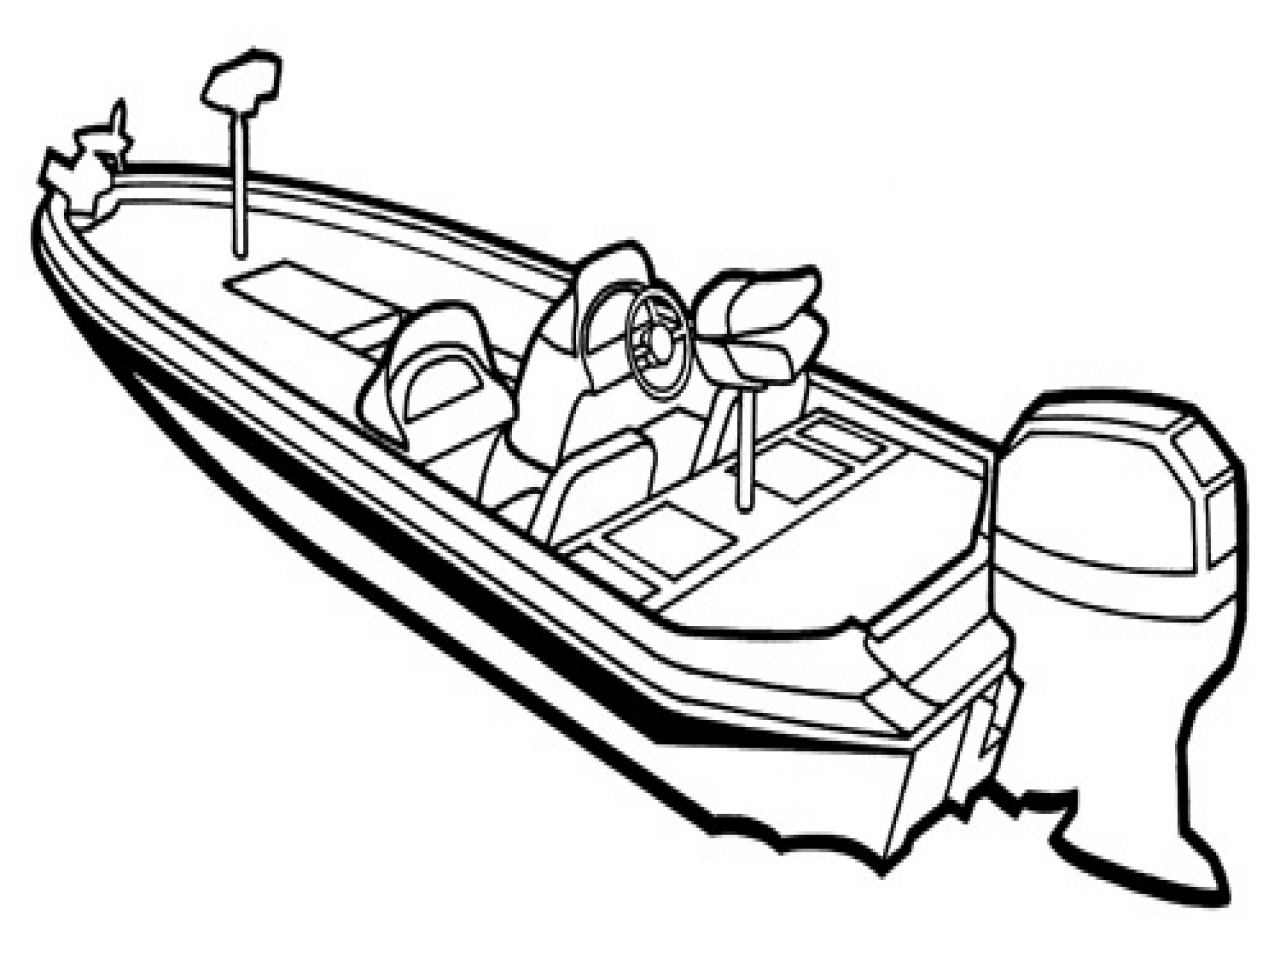 boat drawing images at getdrawings com free for personal use boat rh getdrawings com